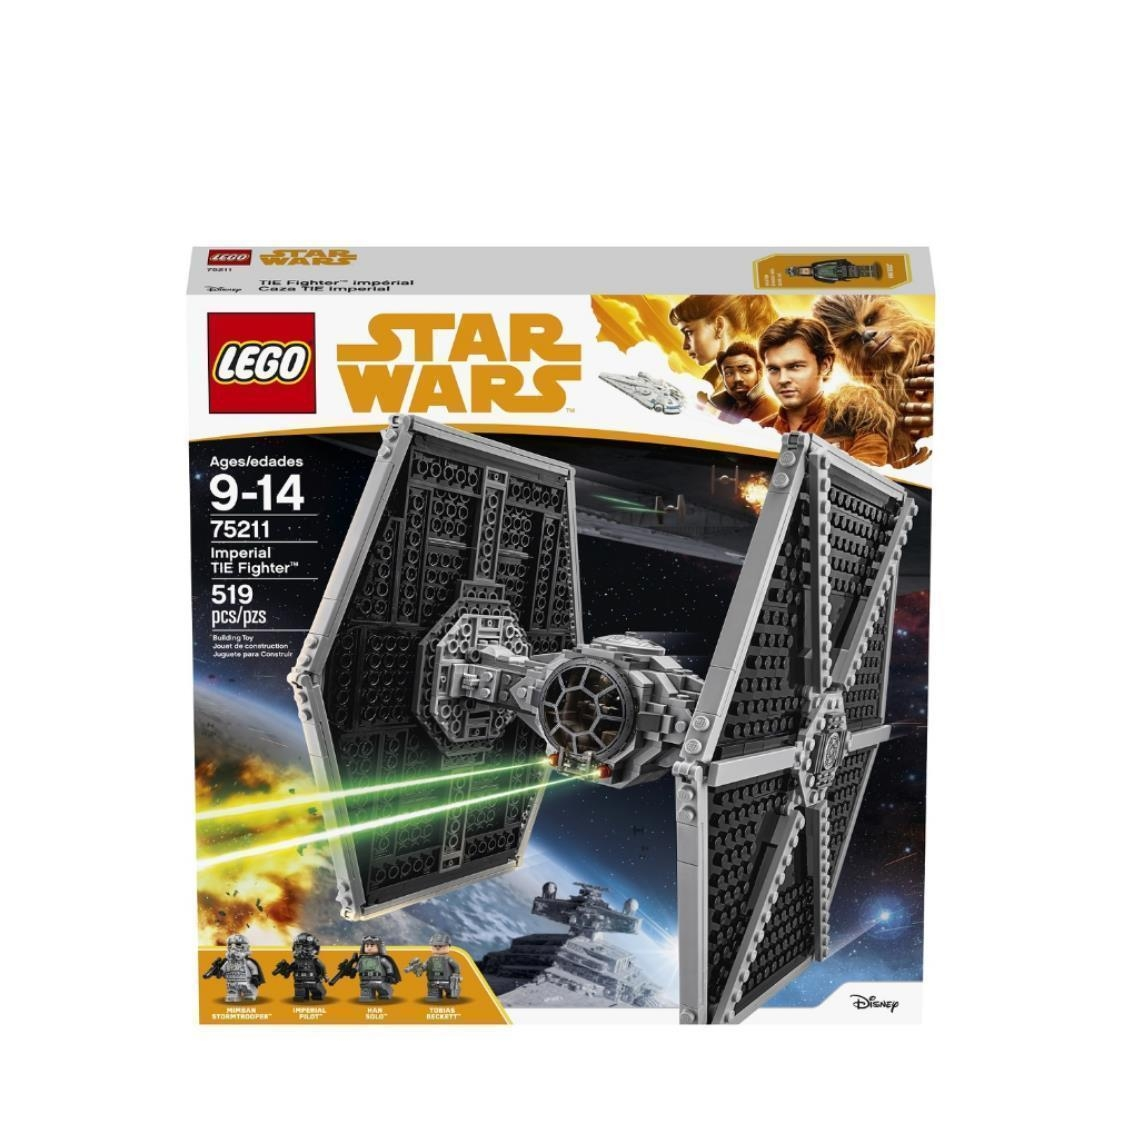 Imperial TIE Fighter 75211